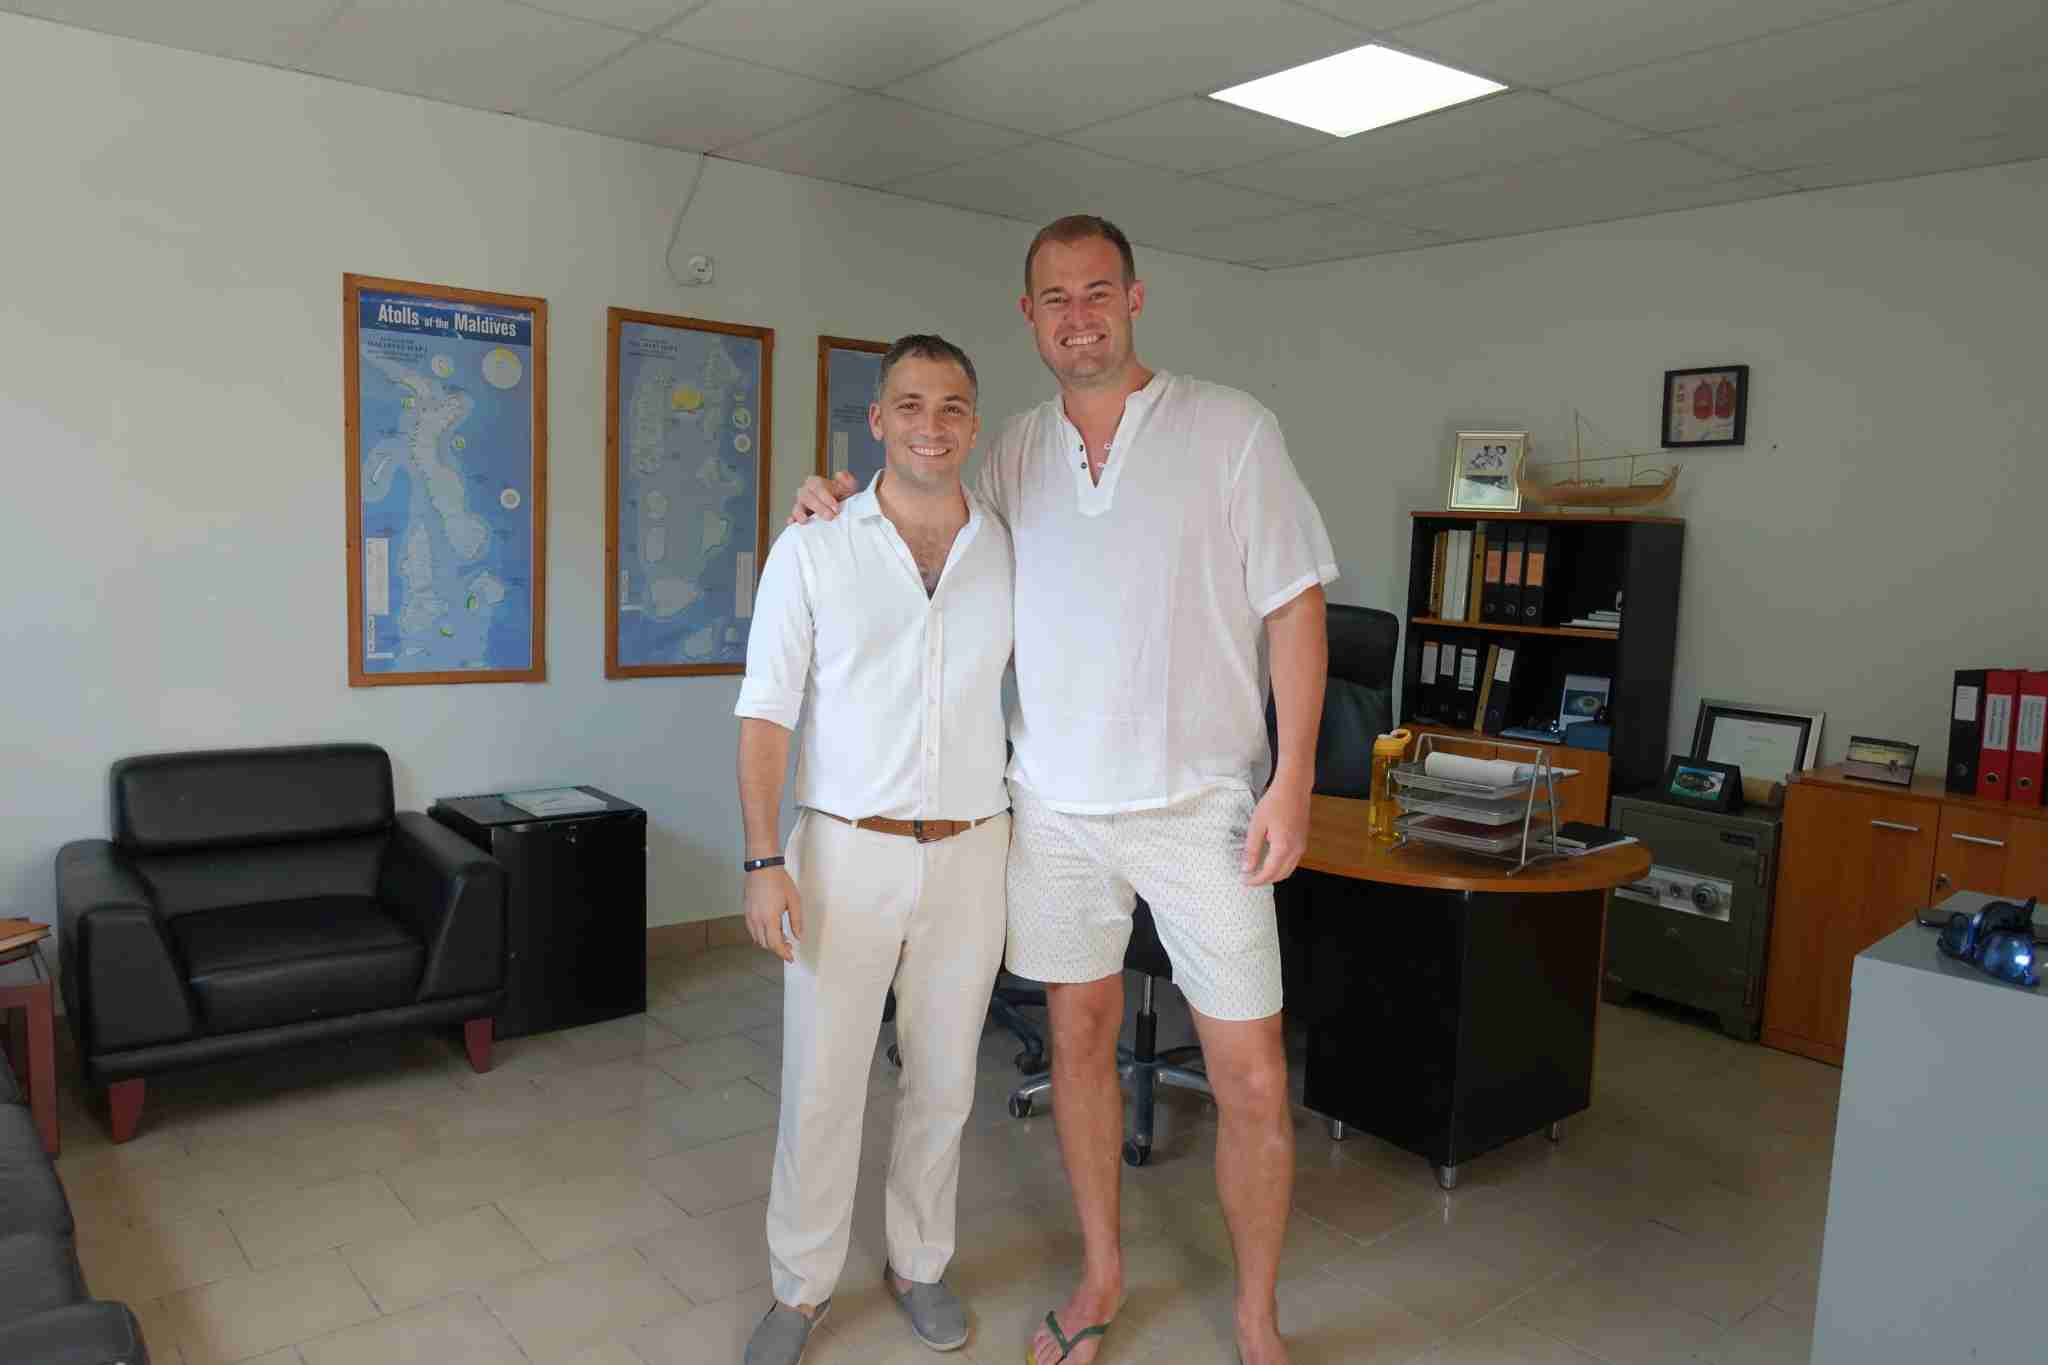 The general manager of the Park Hyatt Maldives, Mariano Silvestri, gave me a tour of the resort.